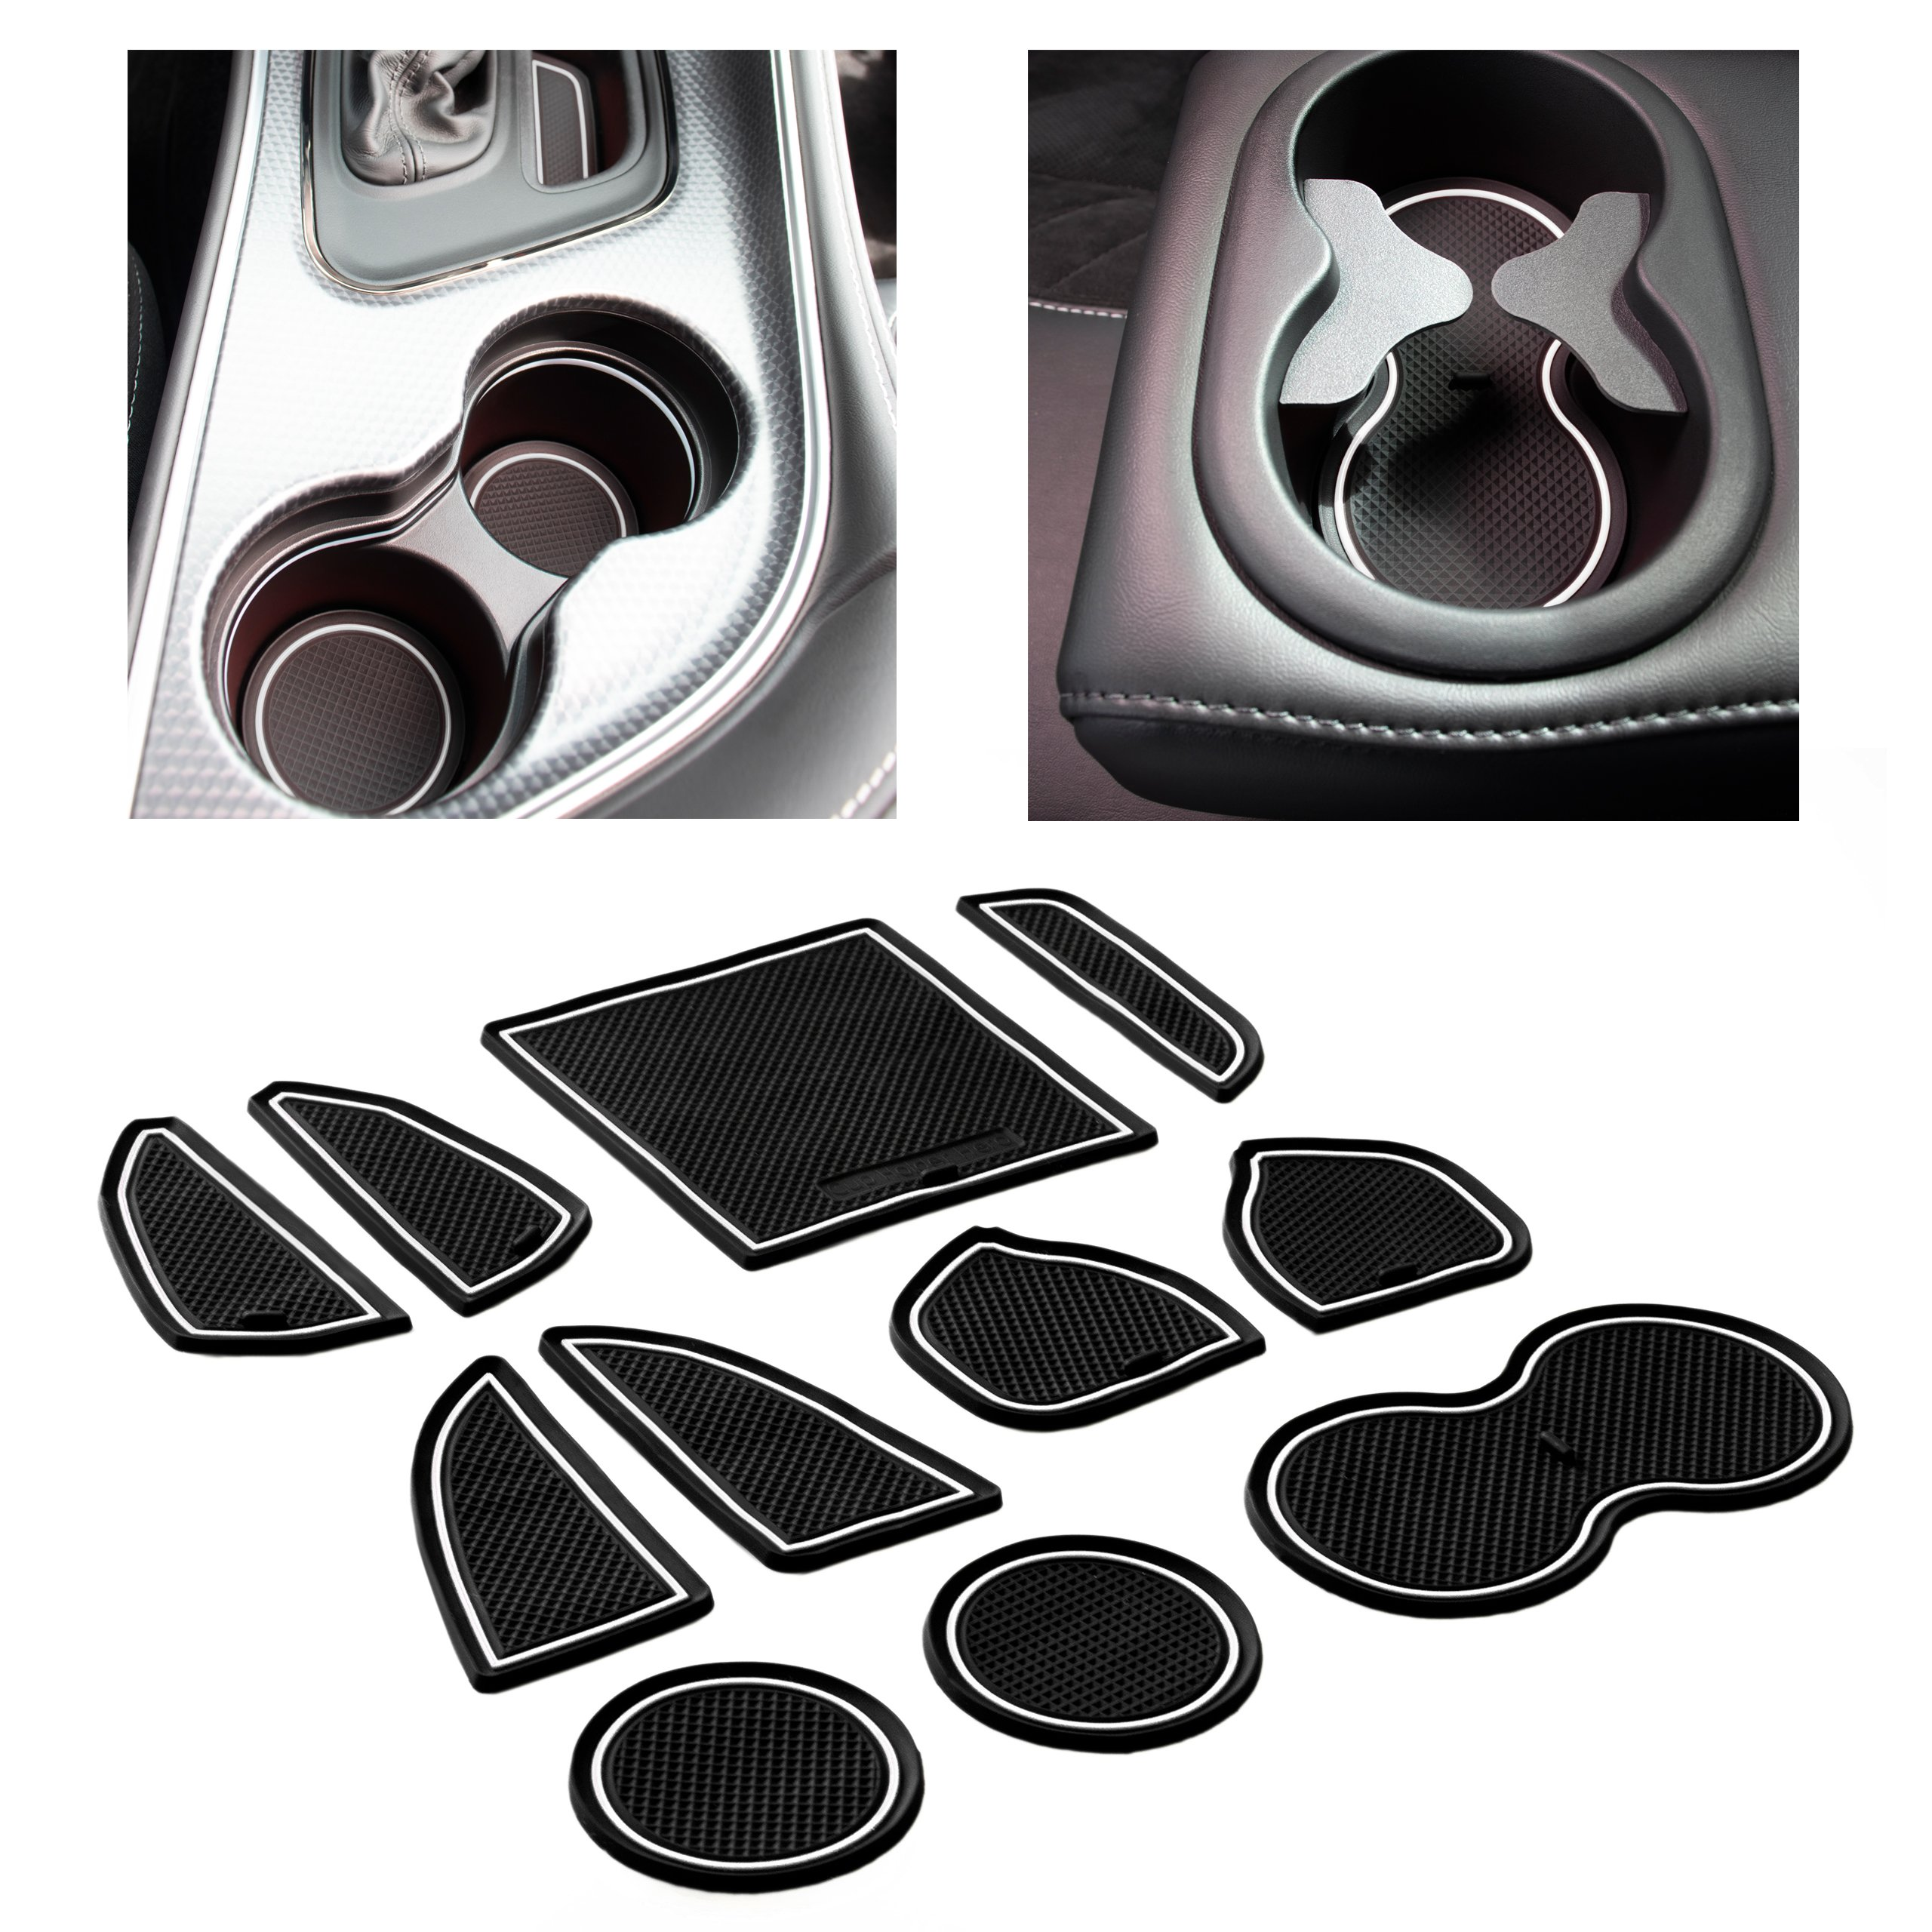 CupHolderHero-Dodge-Challenger-2015-2021-Liners-Accessories thumbnail 37